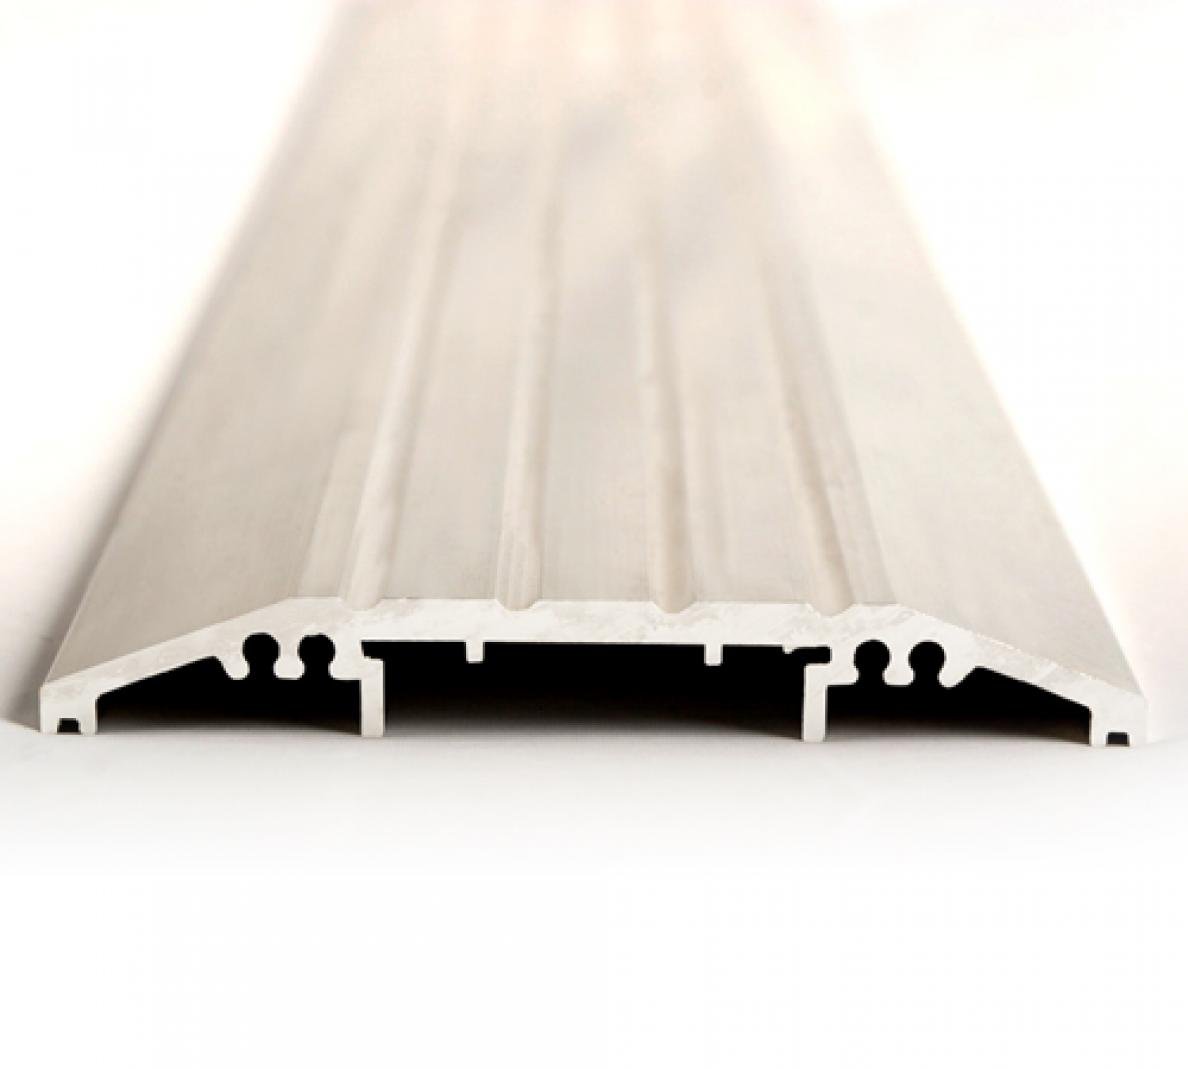 Aluminium Threshold Plate Ja Seals